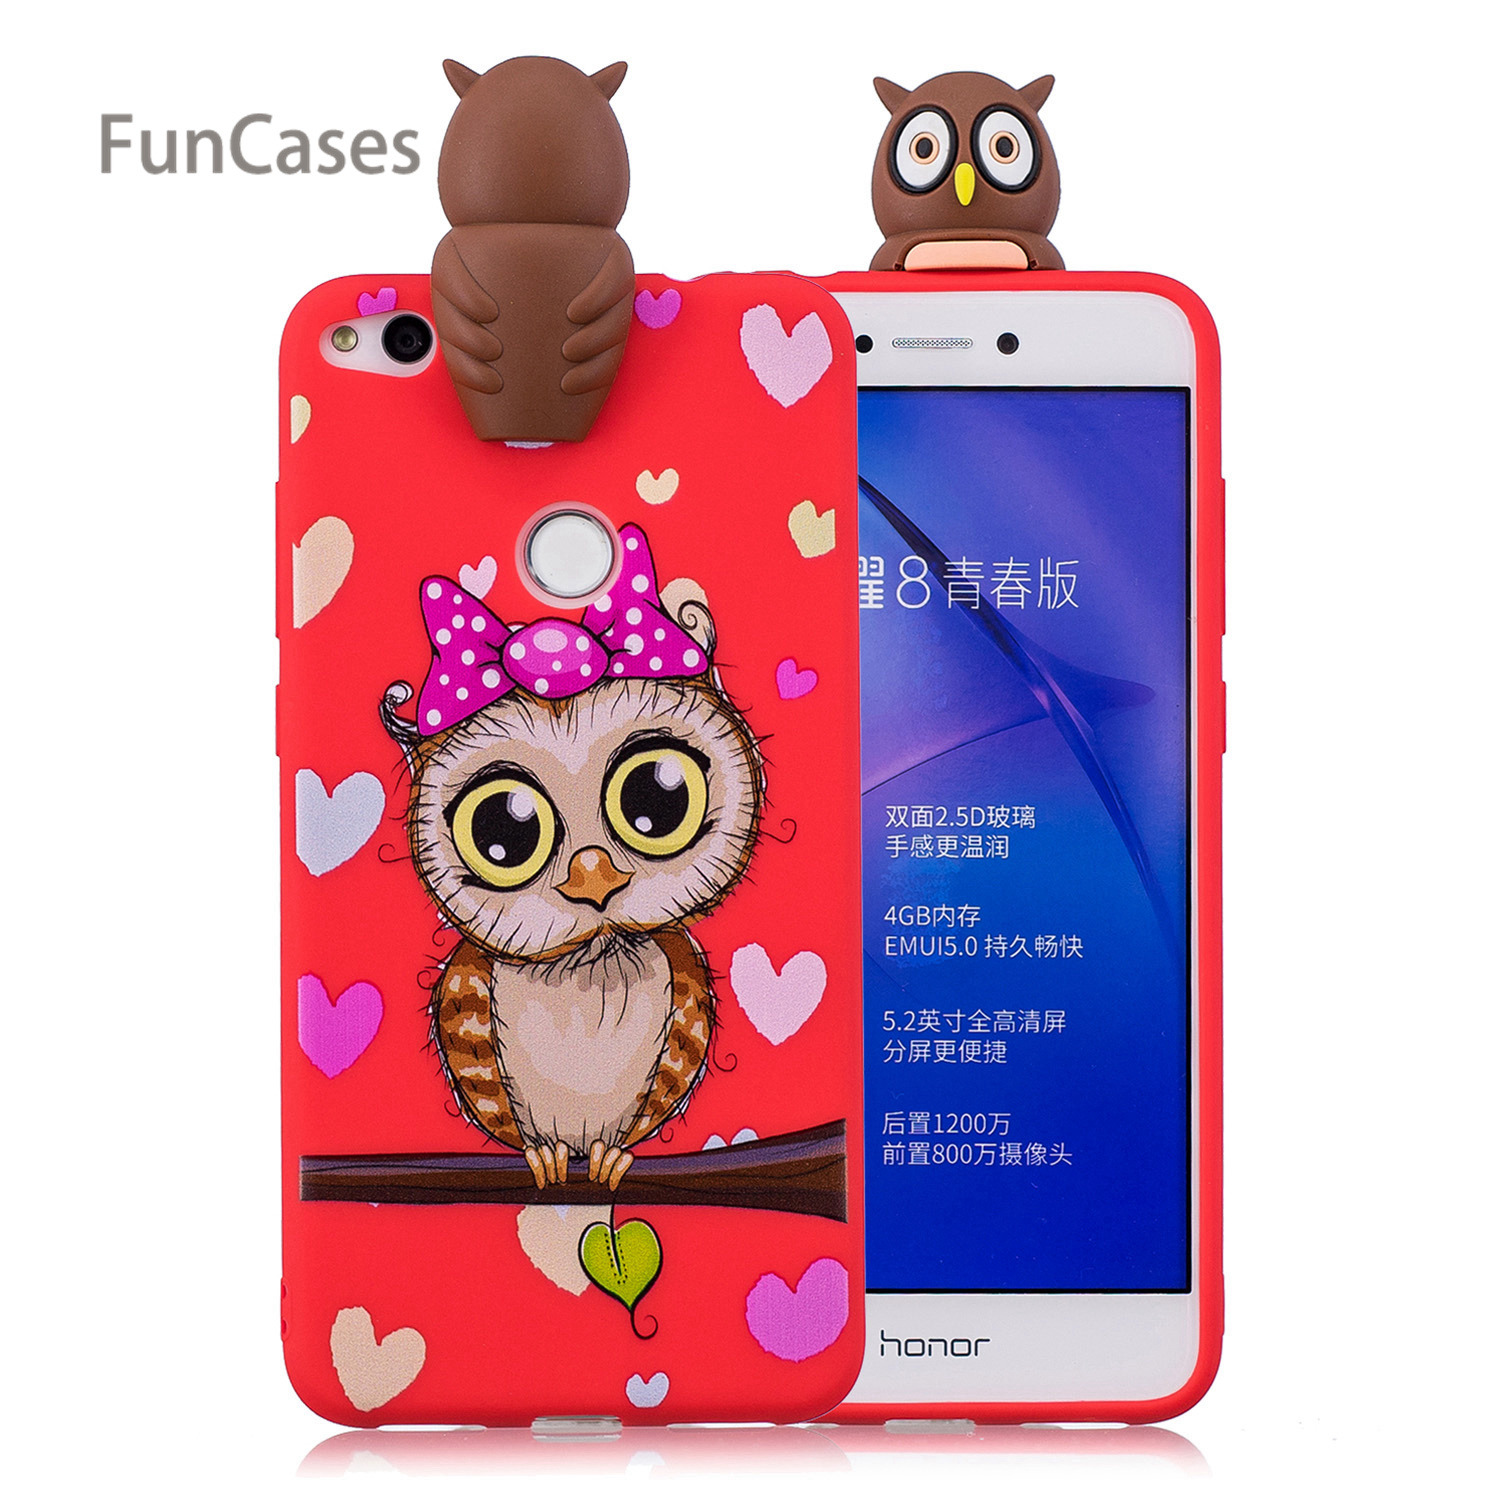 Handsome Owl <font><b>Phone</b></font> <font><b>Case</b></font> sFor Hoesjes Huawei P8 Lite 2017 Soft TPU Back <font><b>Phone</b></font> <font><b>Case</b></font> Huawei Ascend P9 Lite 2017 Honor 8 Lite